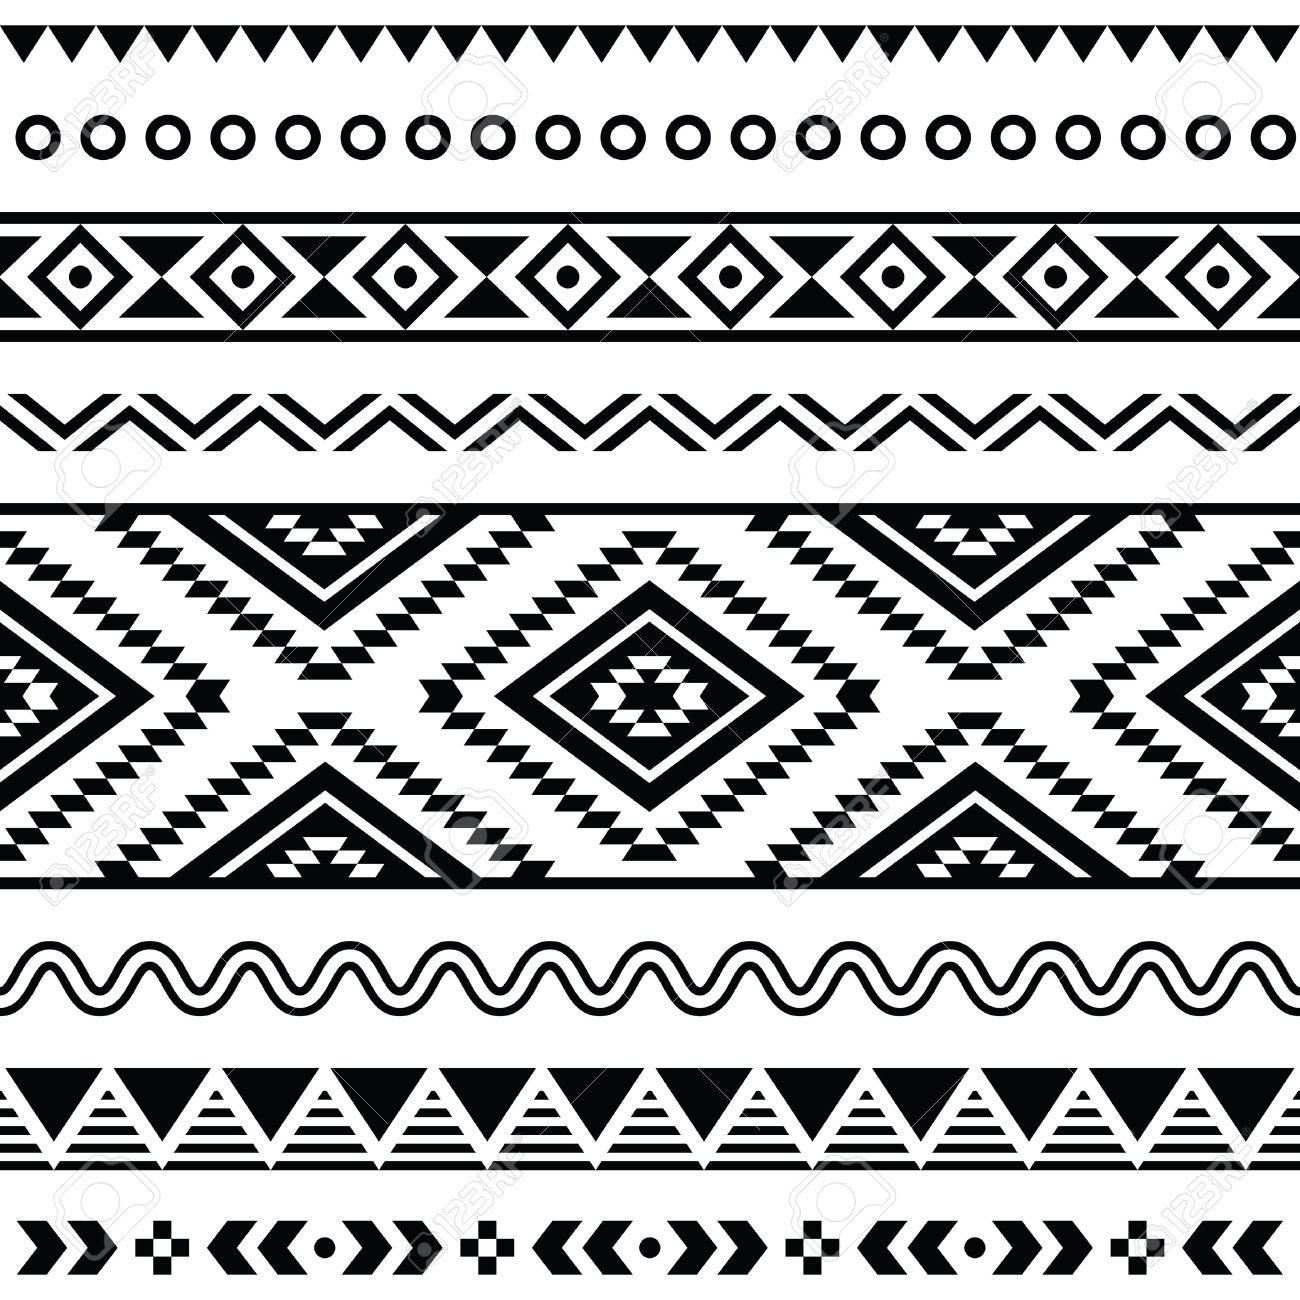 Aztec clipart number 1 png freeuse download Aztec clipart number 1 - ClipartFest png freeuse download